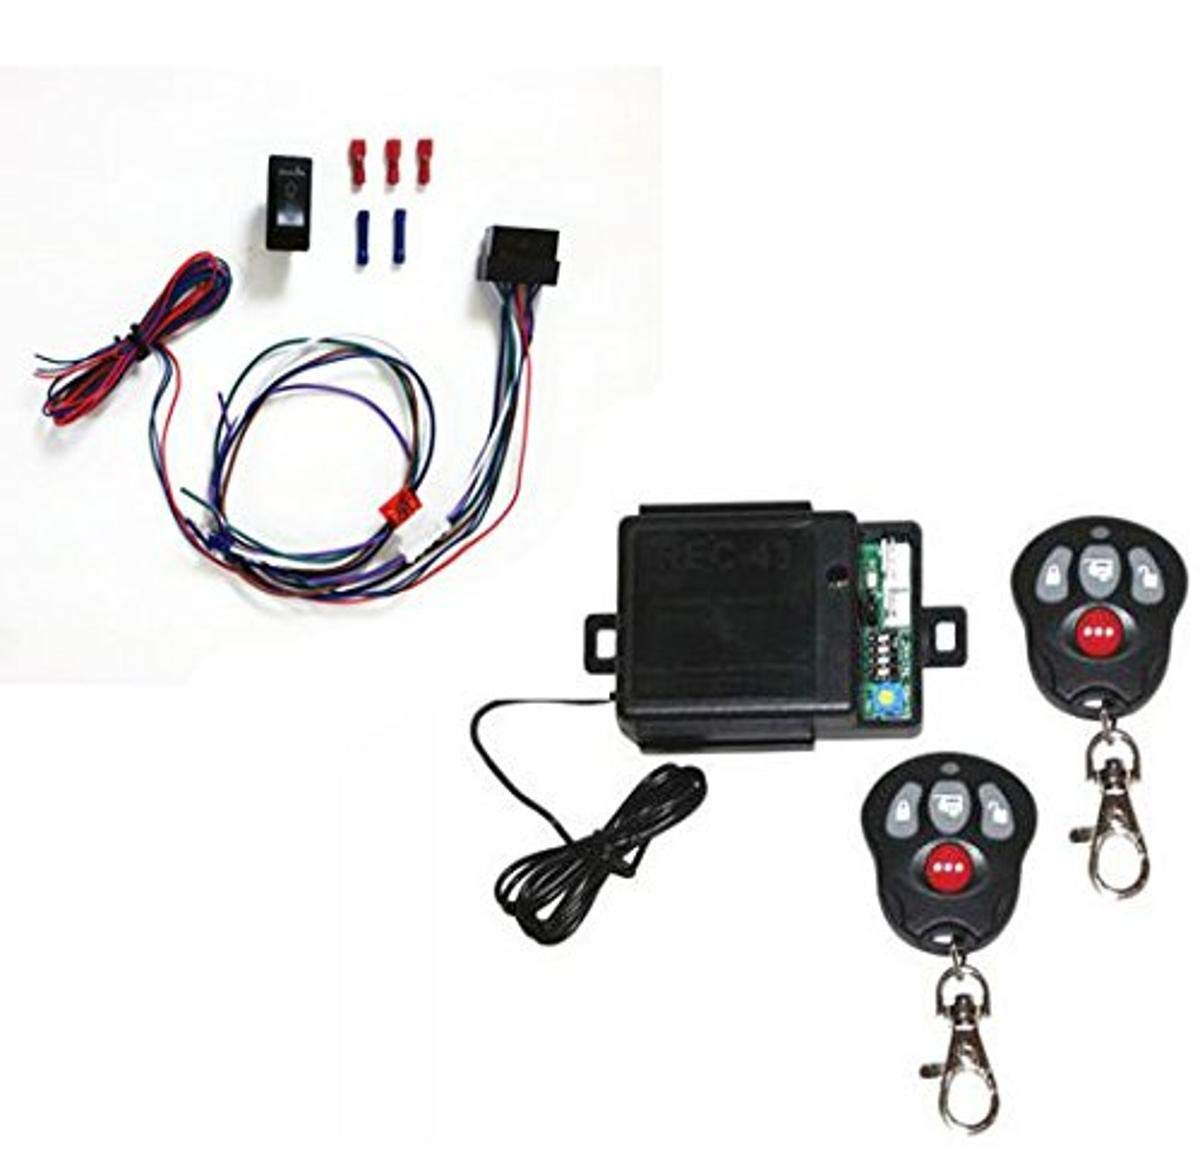 MPC LA-KIT2 Linear Actuators for Remote Control Wiring and Switch Kit